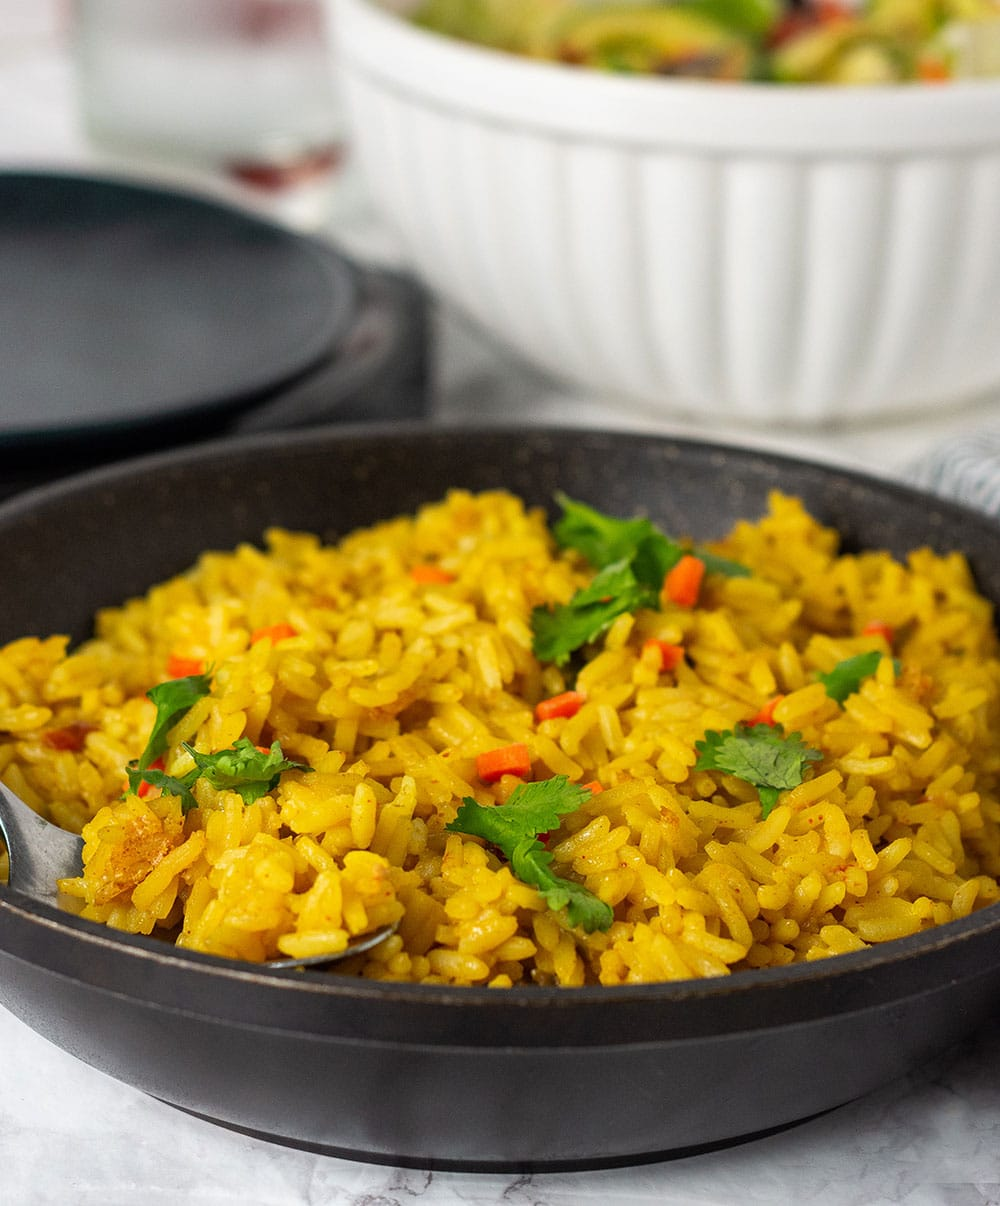 Turmeric coconut rice made with seasoned coconut milk, flavorful and easy to prepare